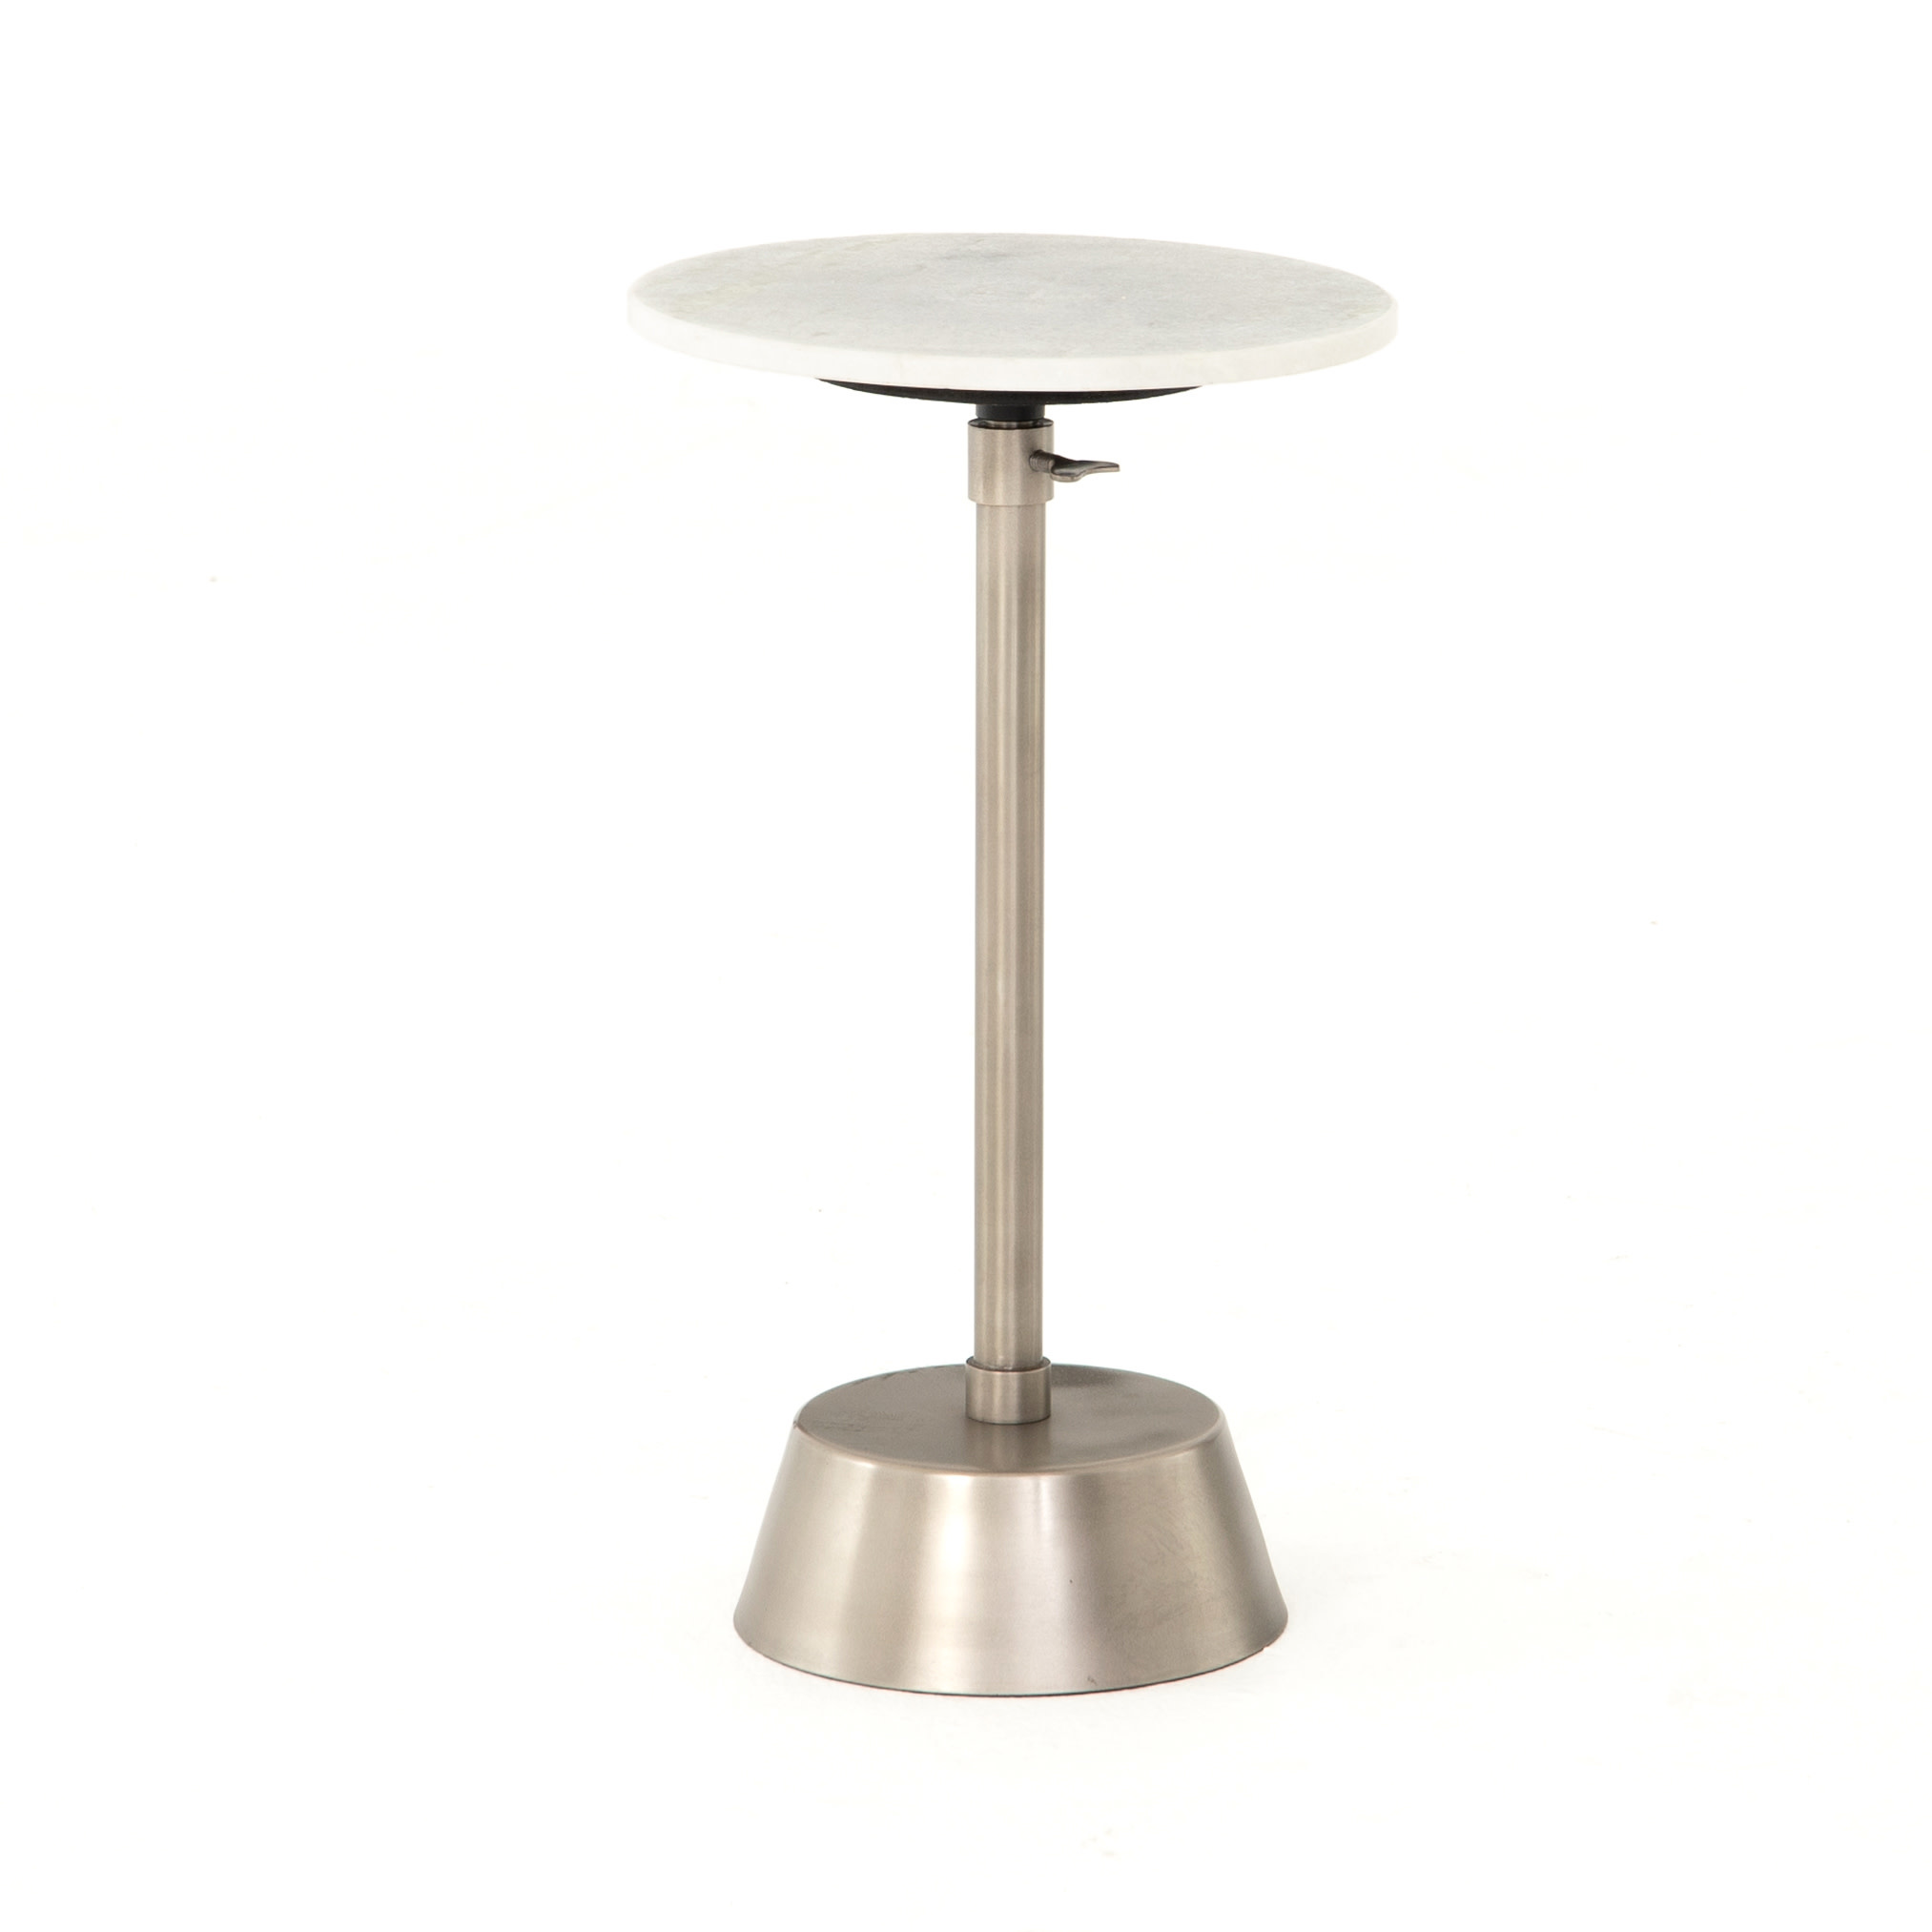 BREA TABLE - PEWTER